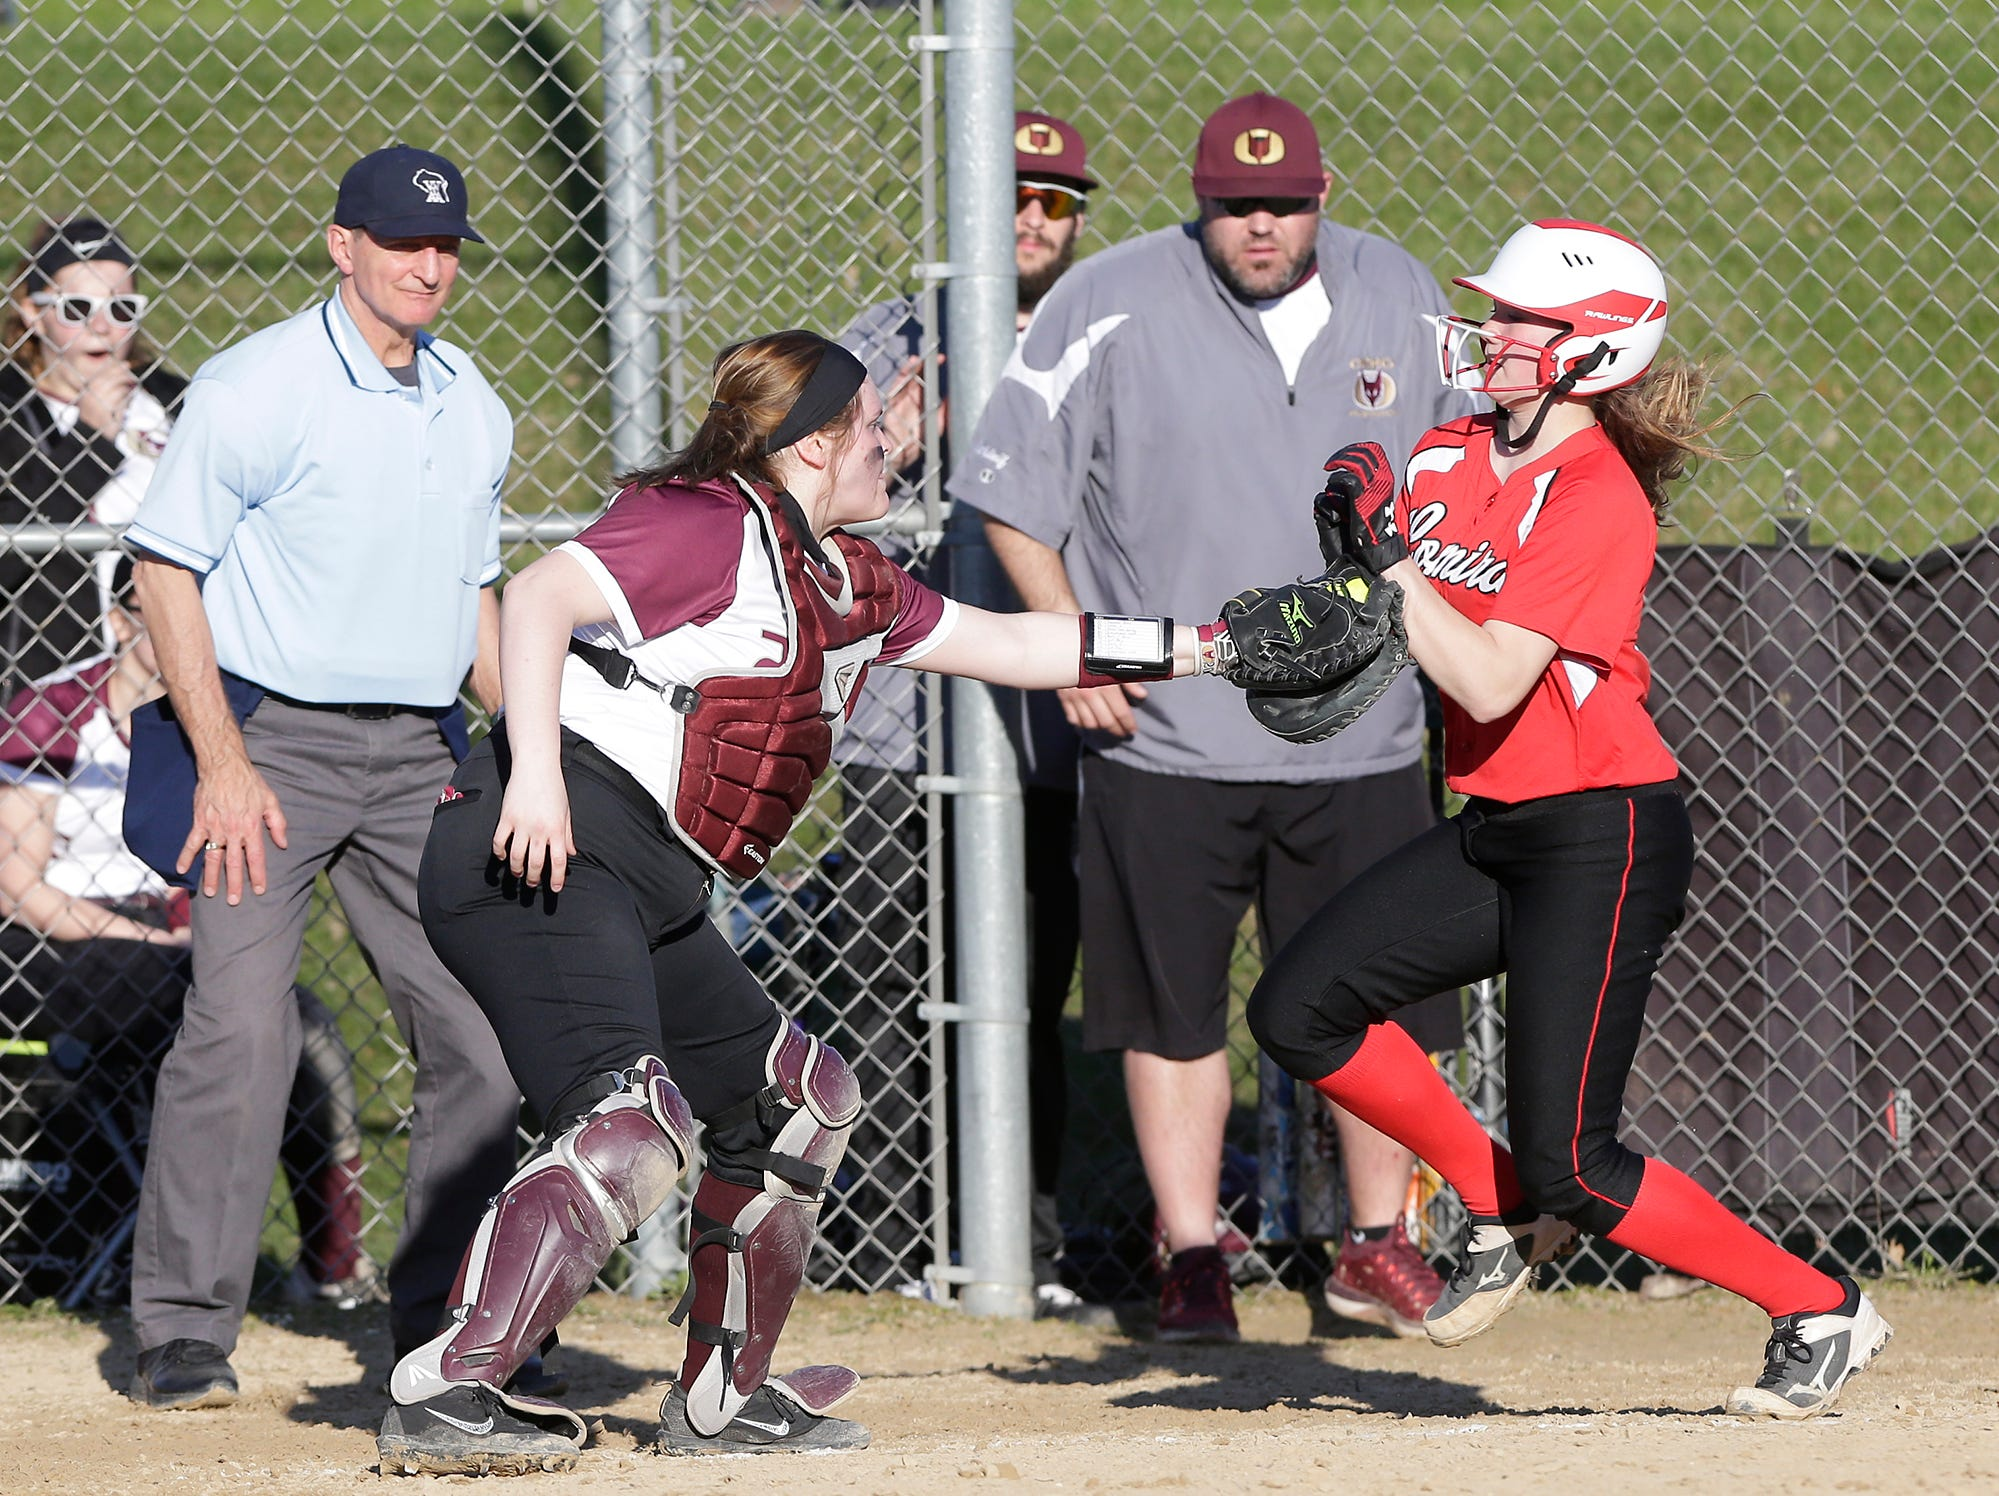 Omro High School softball's LeAnn Steinmates tags out a Lomira High School player during their game Tuesday, April 23, 2019 in Lomira, Wis. Doug Raflik/USA TODAY NETWORK-Wisconsin